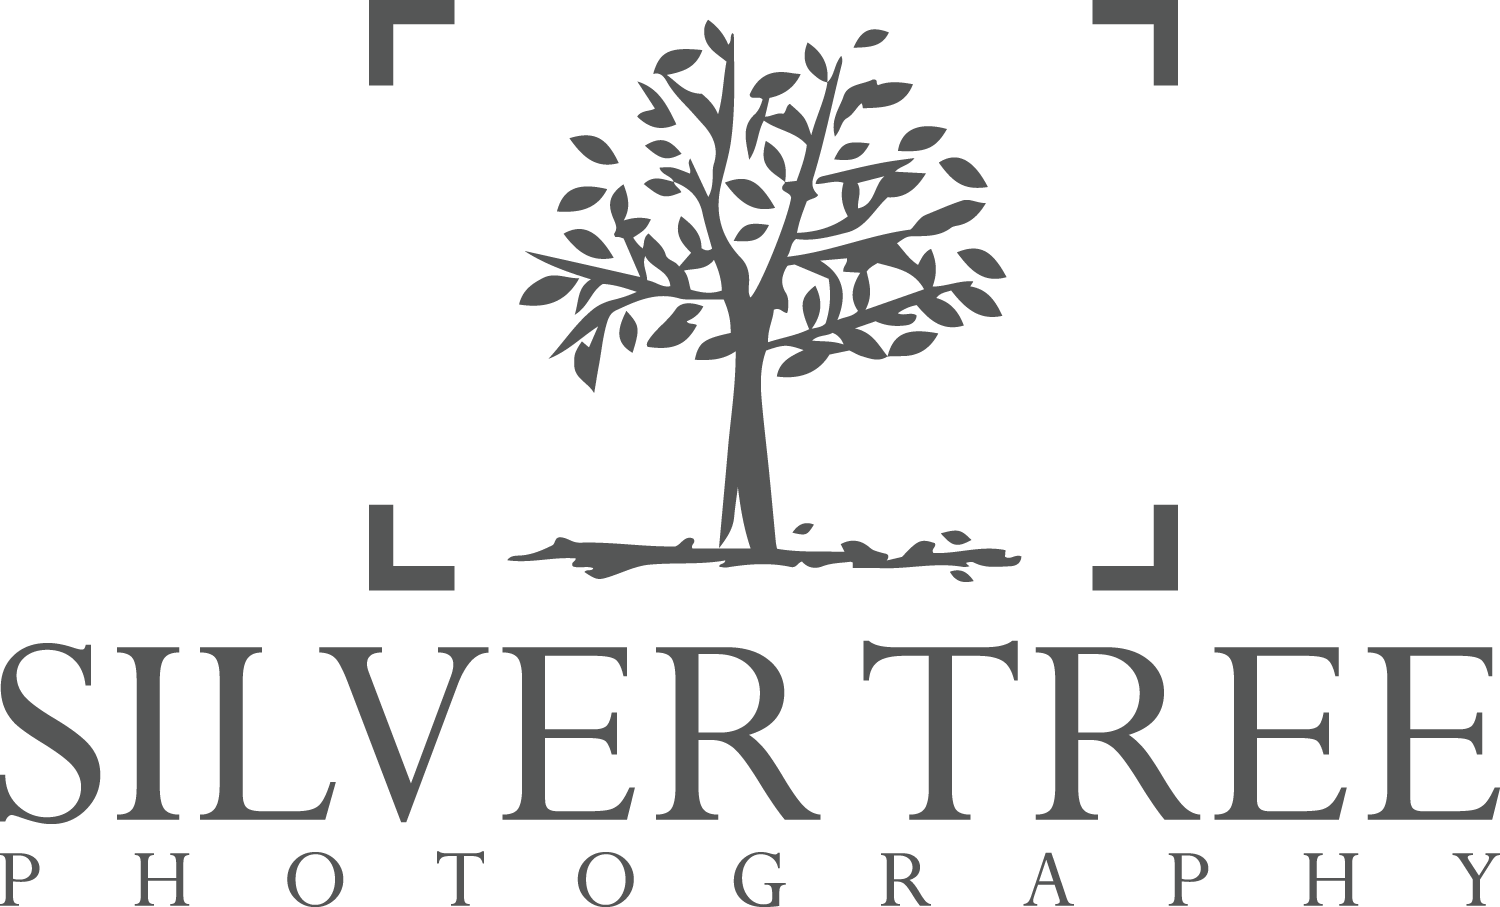 Silver Tree Photography